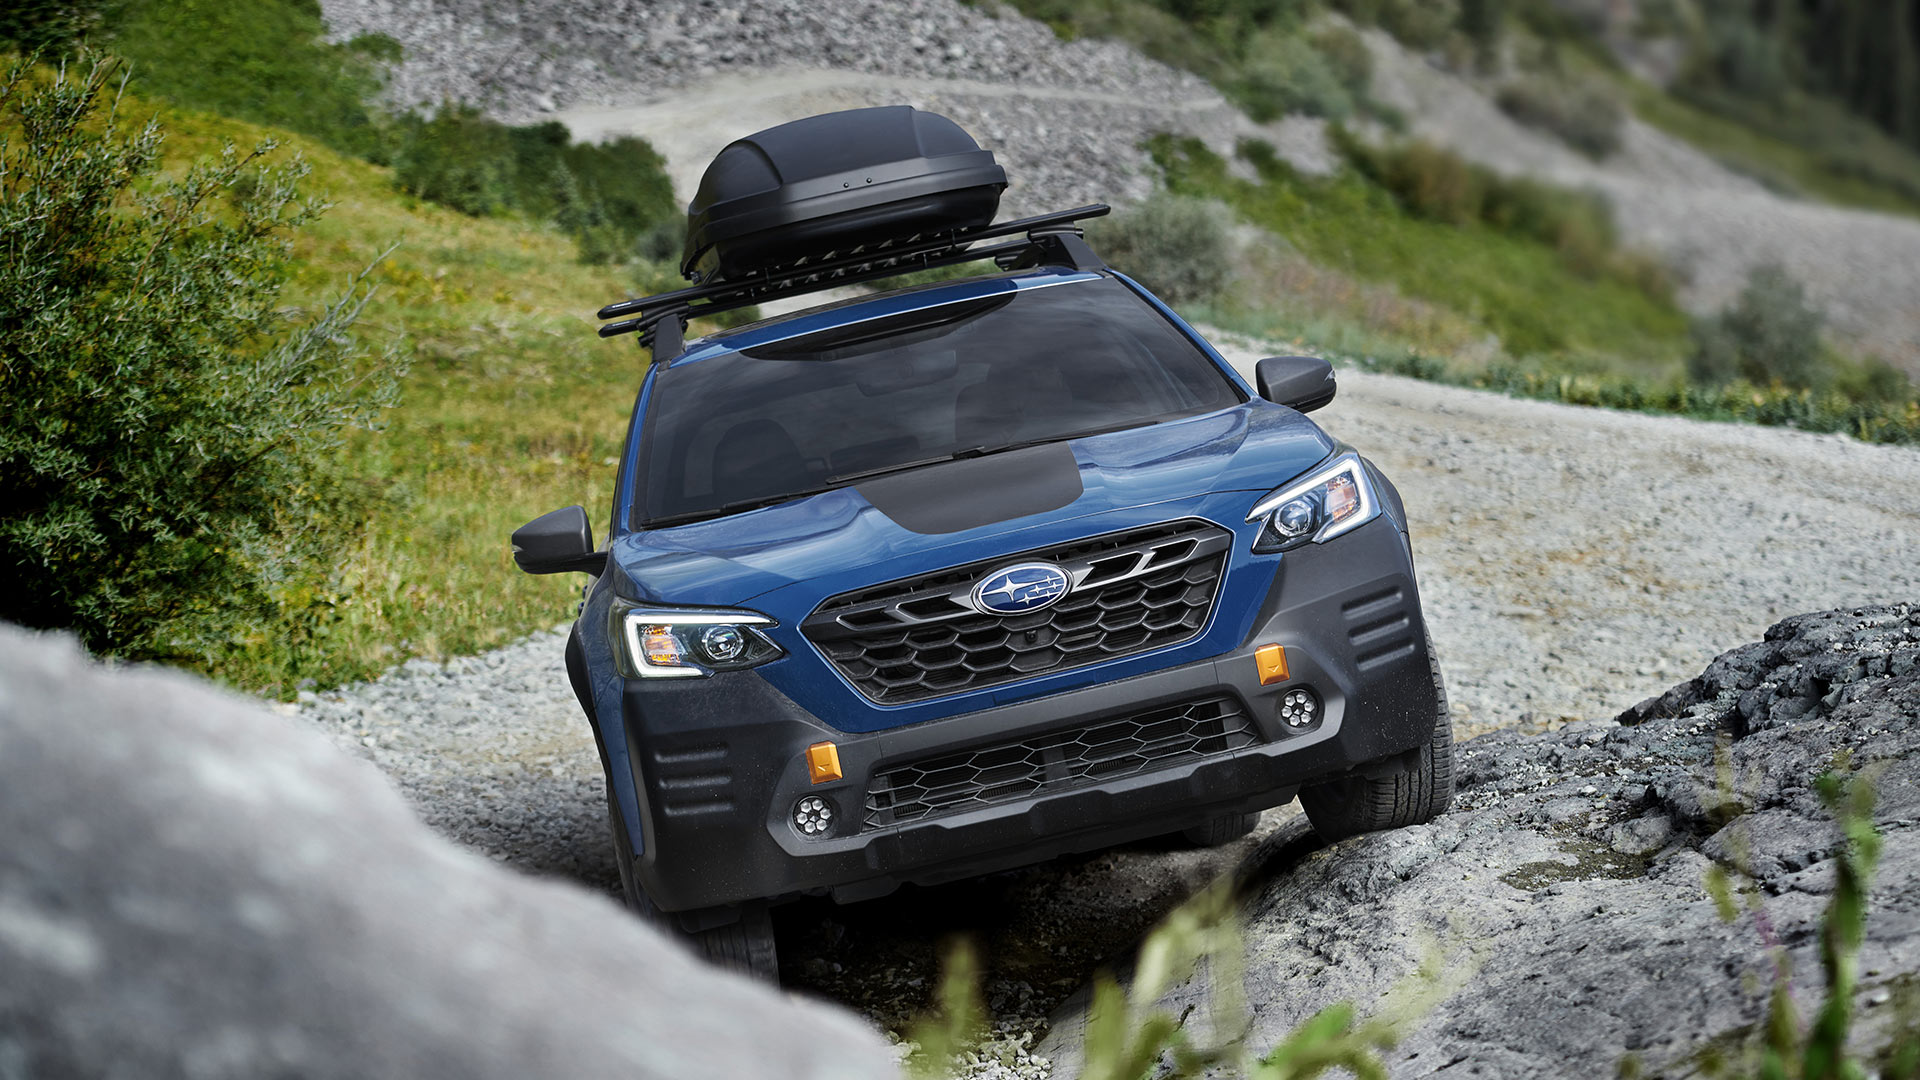 The Subaru Outback Wilderness Offroad